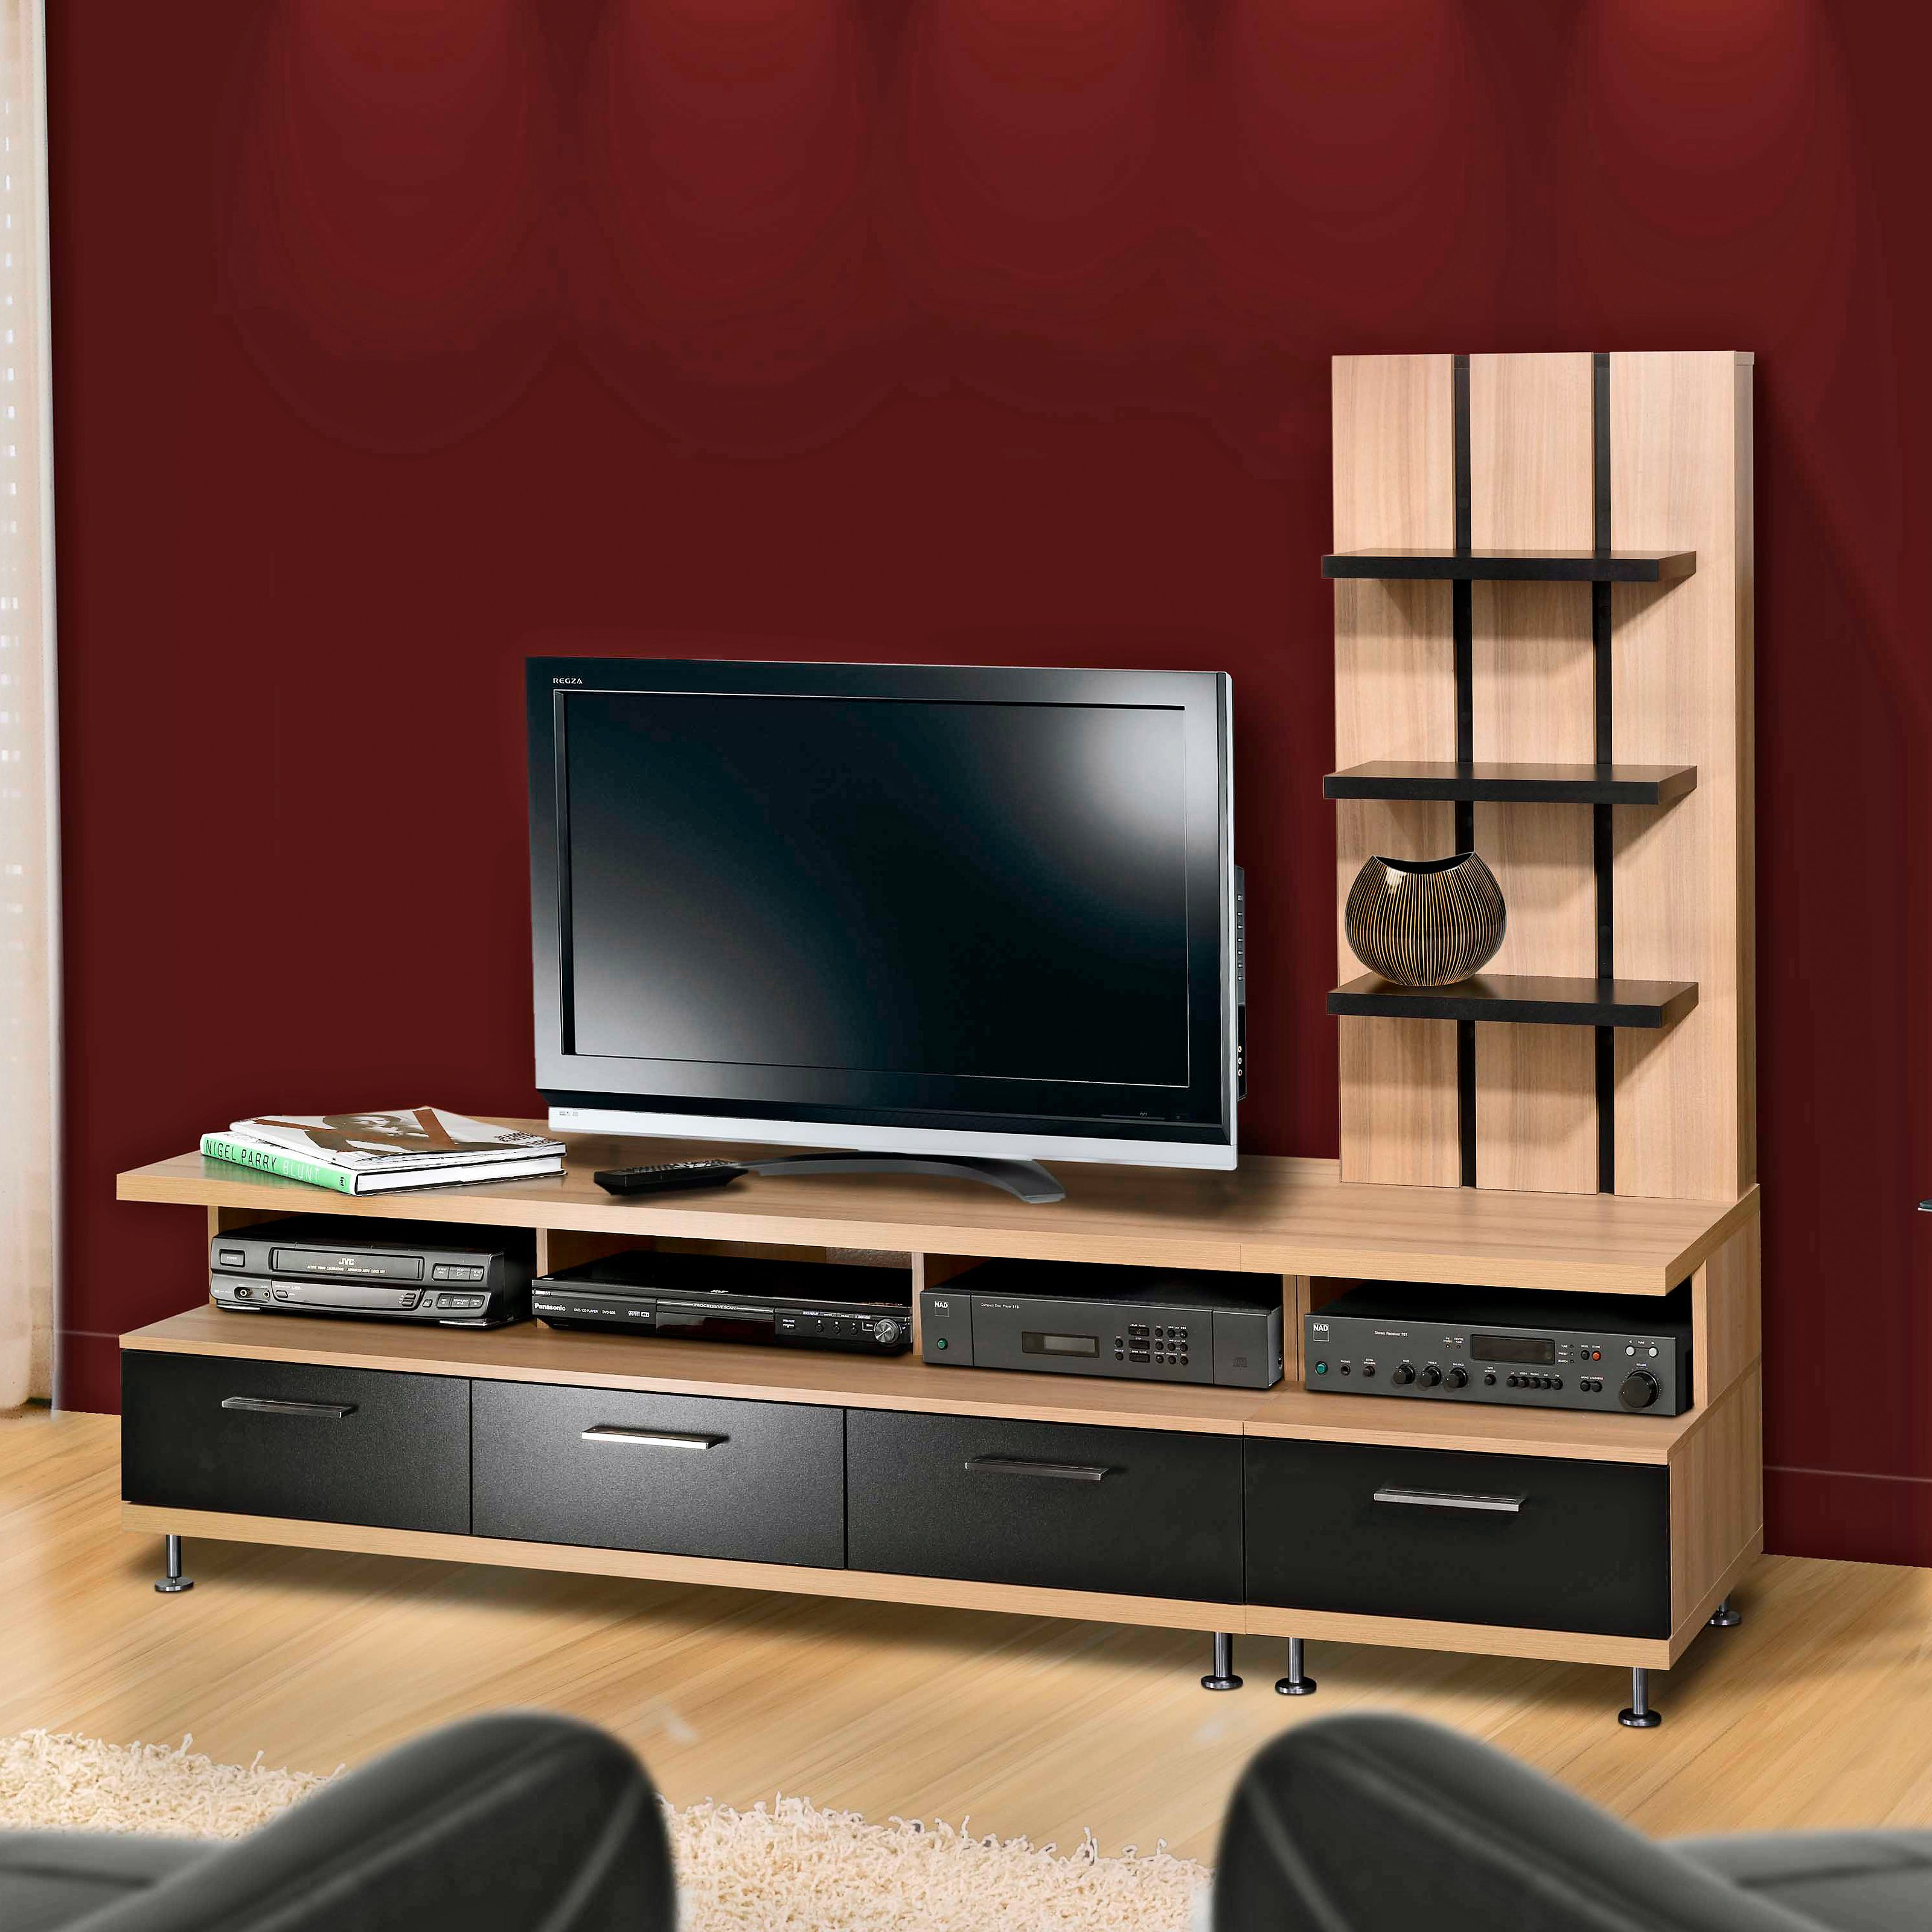 Latest Wooden Tv Stands For Flat Screens With Regard To Best Contemporary Tv Console For Flat Screens — All Contemporary Design (Gallery 15 of 20)